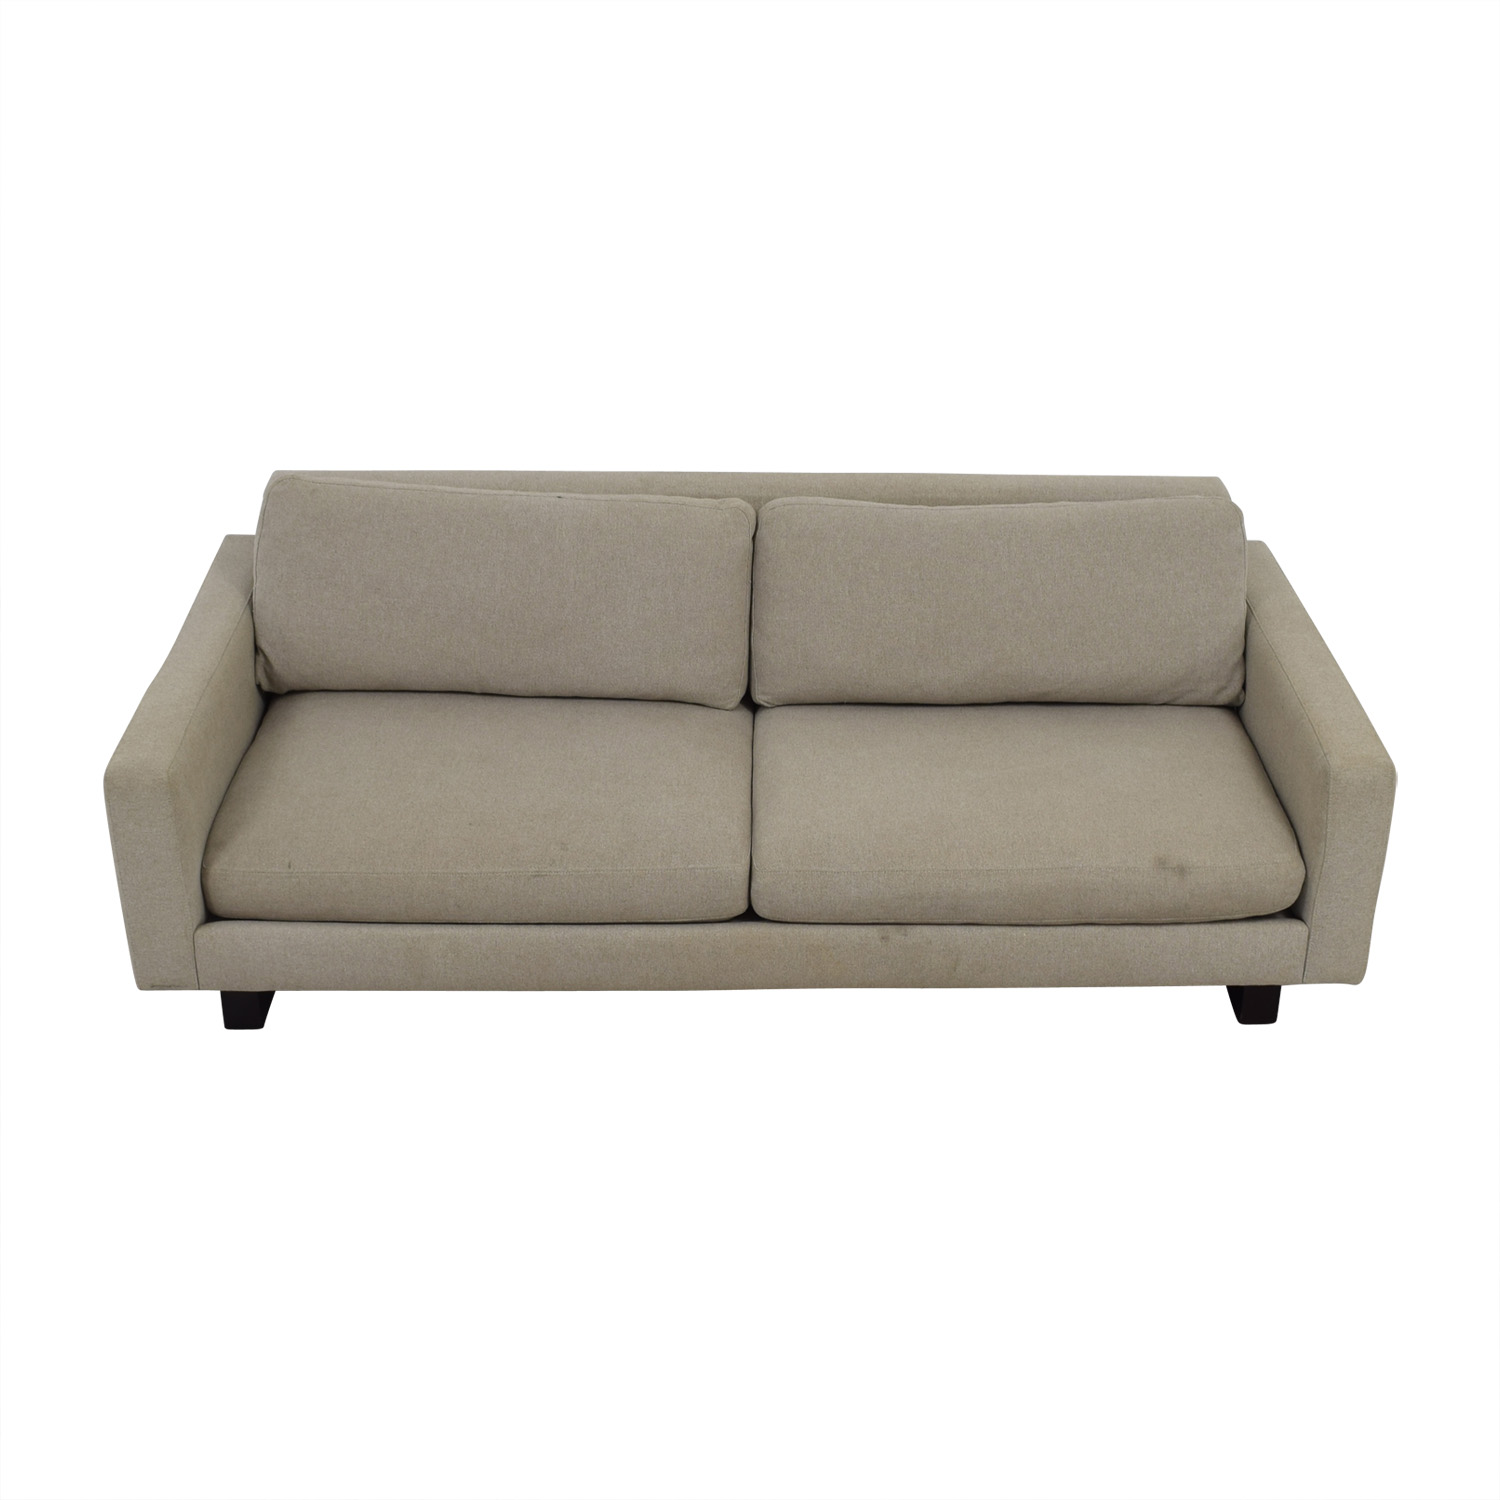 buy Room & Board Beige Hess Two-Cushion Sofa Room & Board Sofas